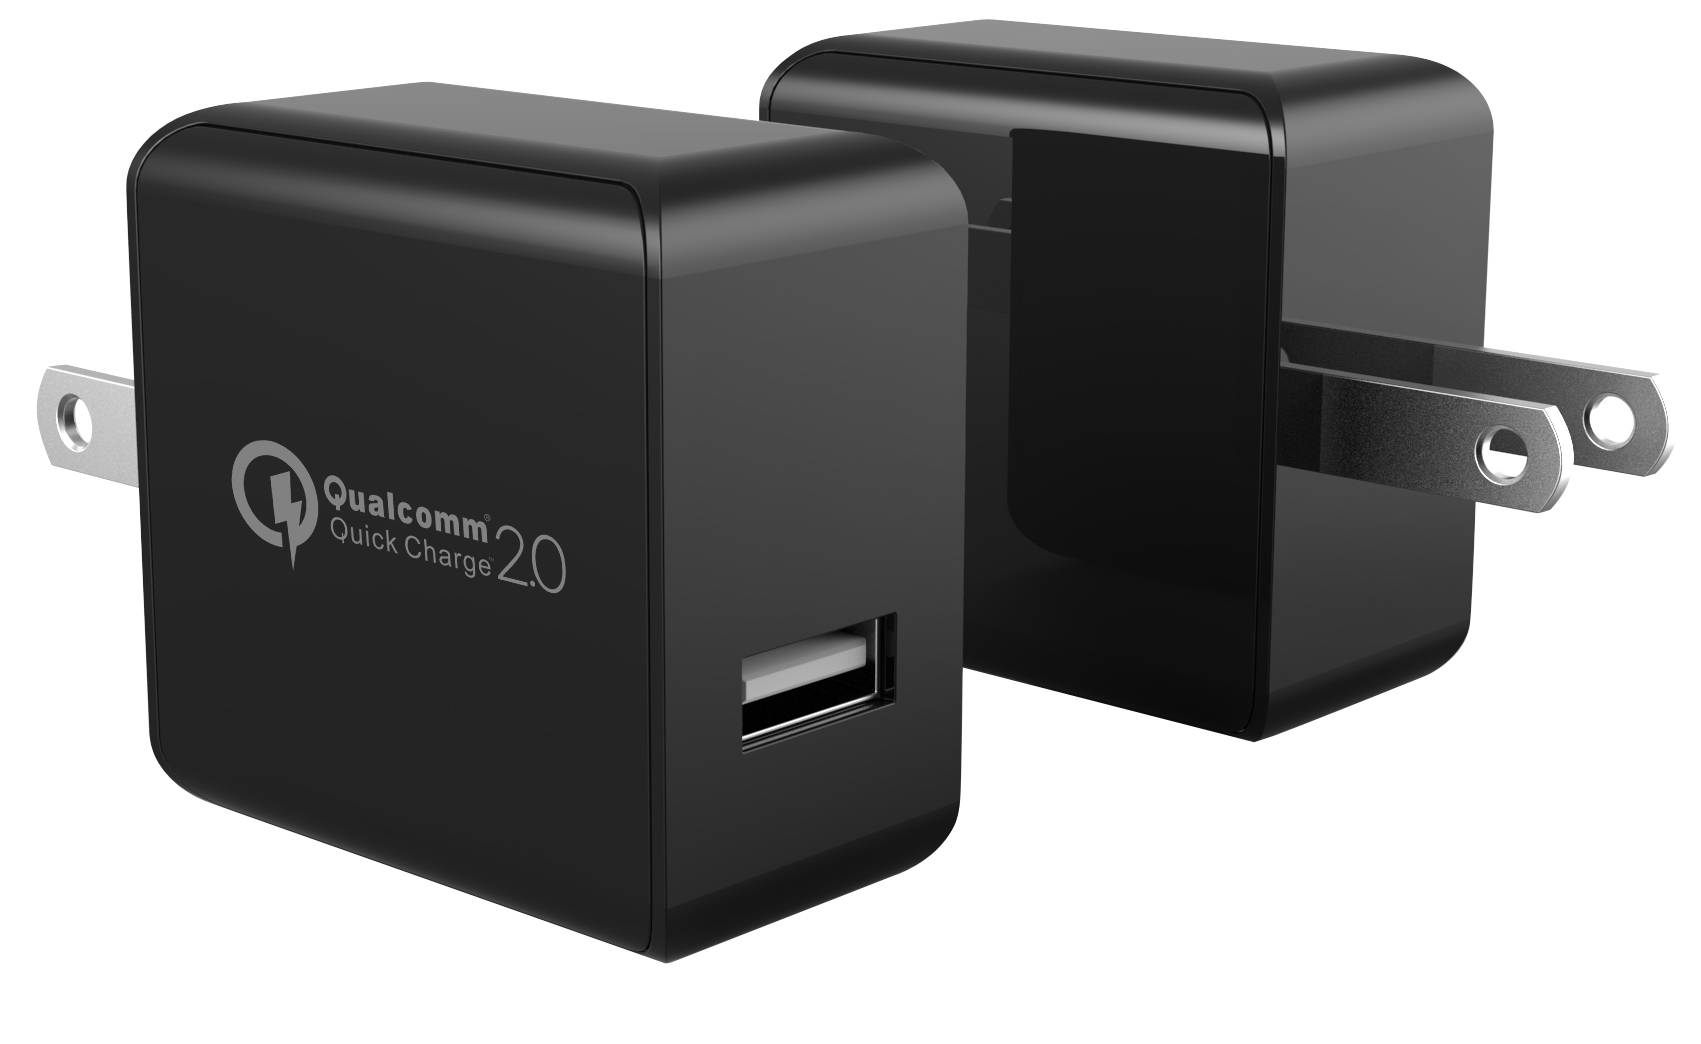 US/EU Quick Charge 2.0 2.4A Single USB Wall Fast Charger Adapter Quick Charge QC2.0 Travel Charger f